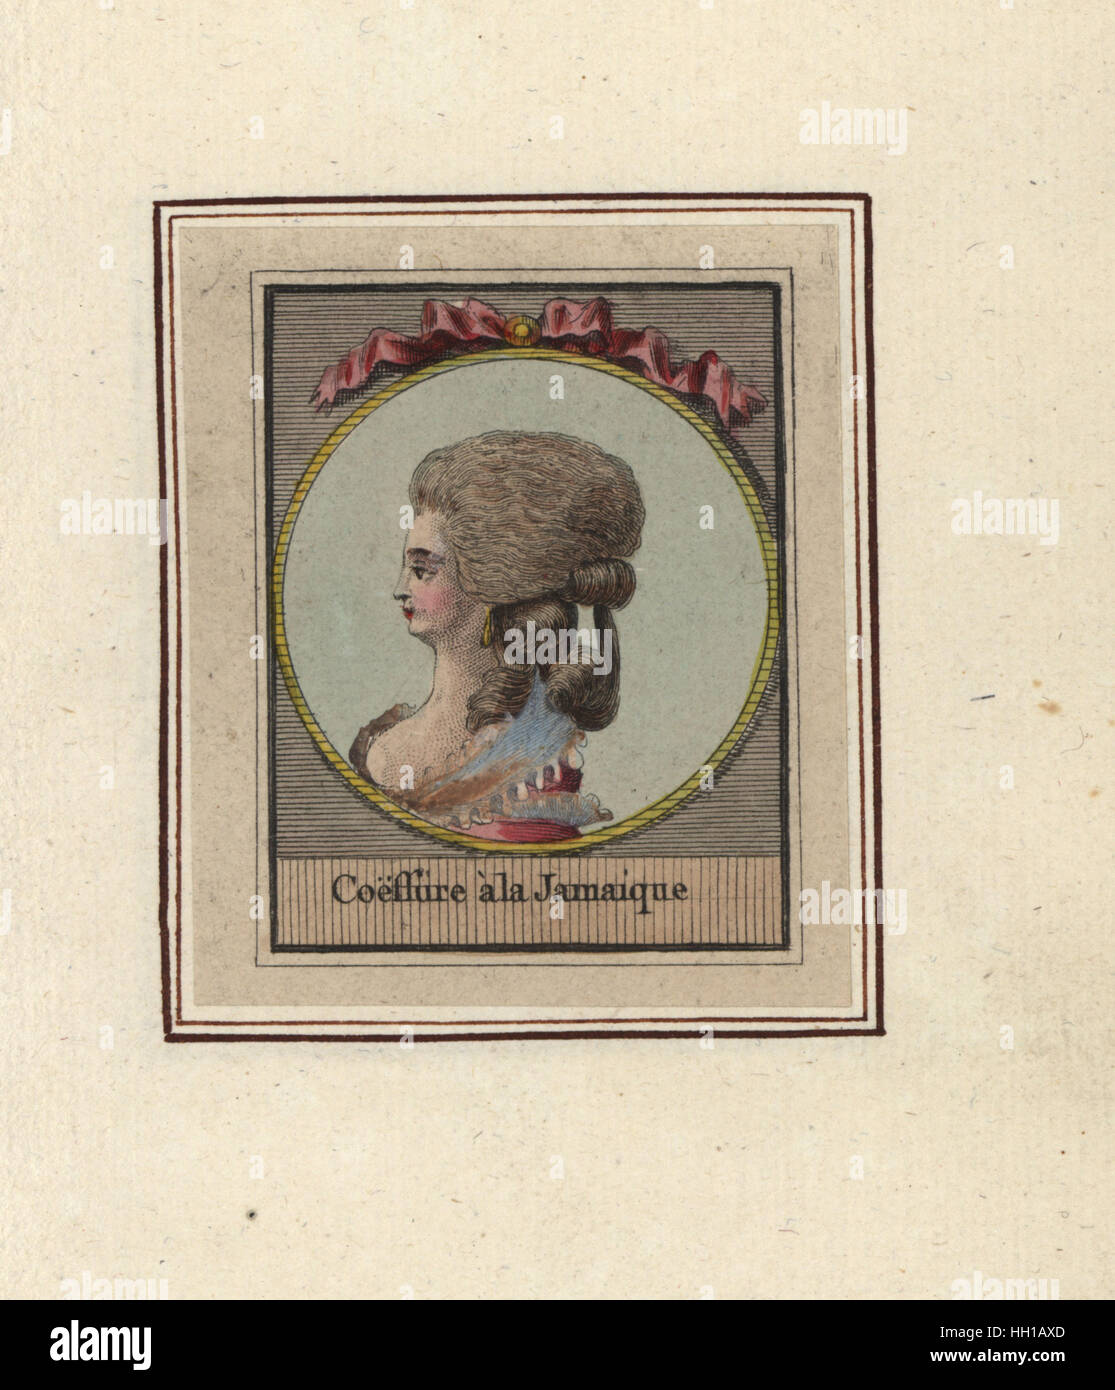 Woman in hairstyle with ringlets called the Jamaican. Coeffure a la Jamaique. Handcoloured copperplate engraving - Stock Image